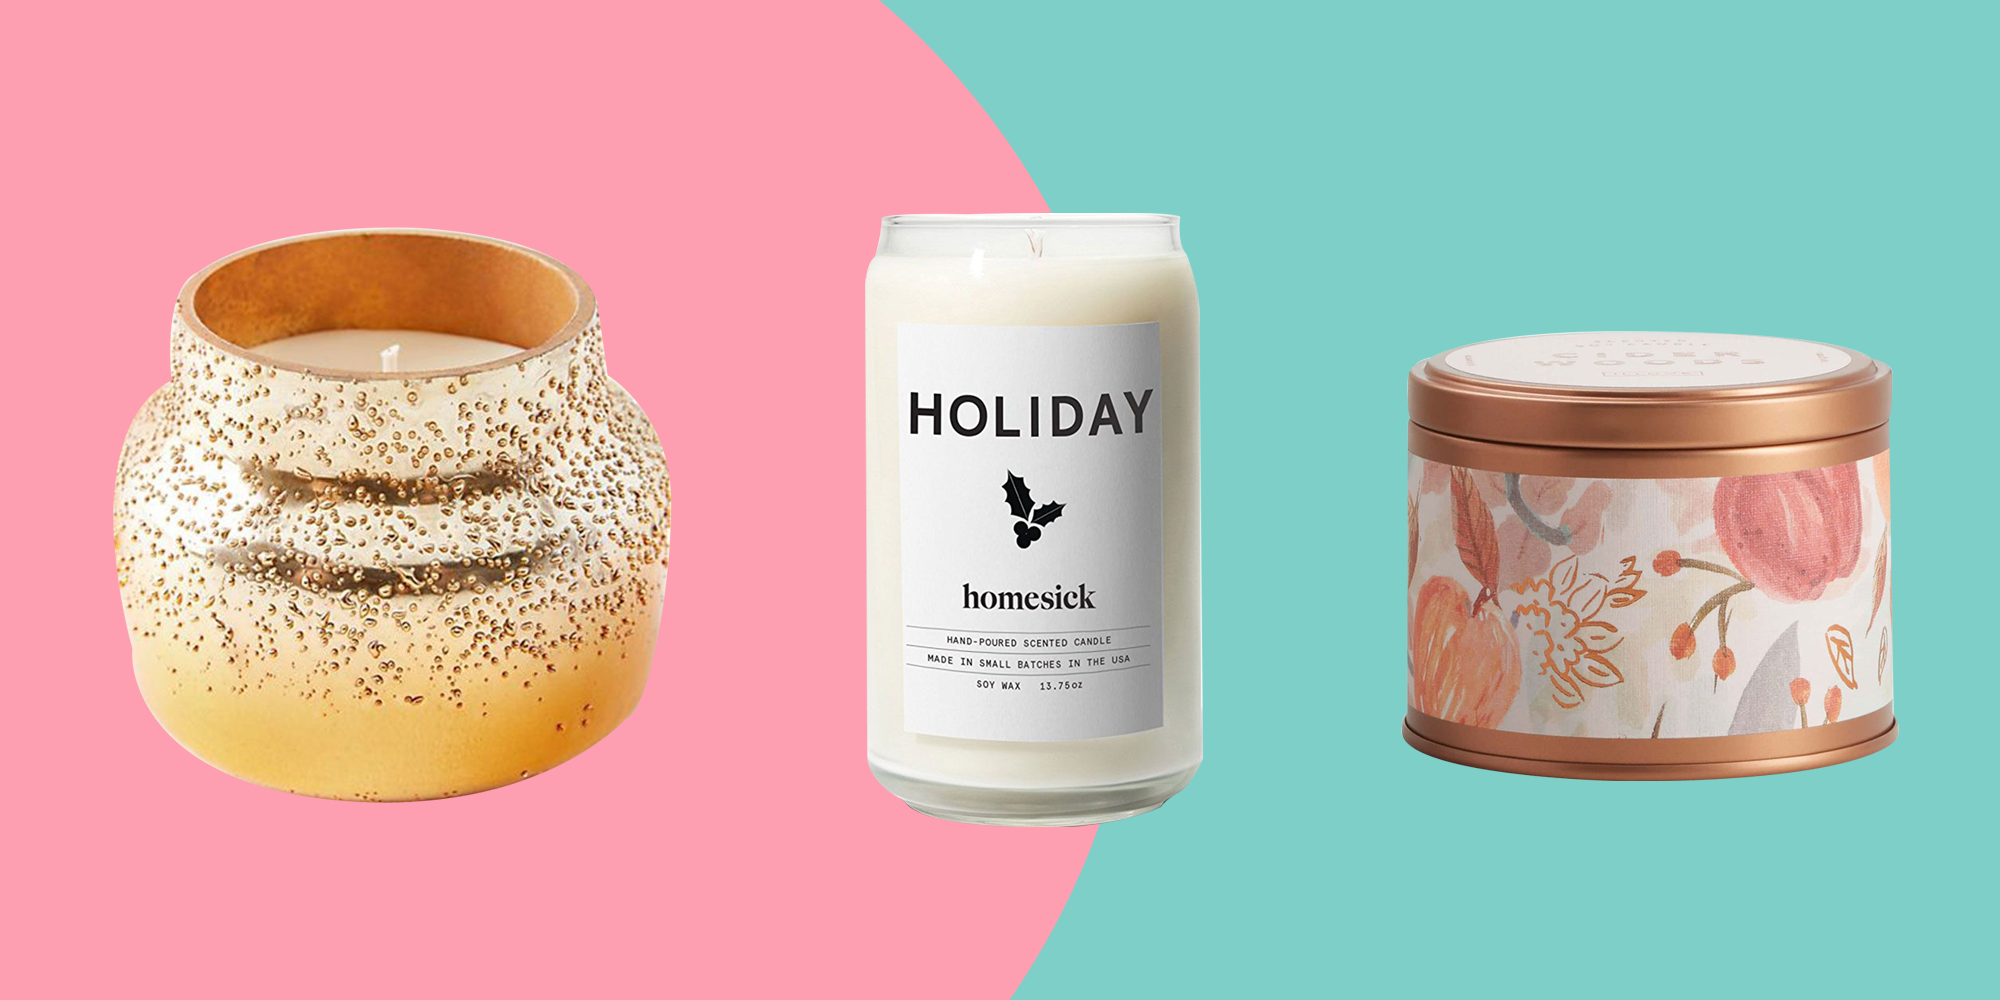 27 Best Scented Candles To Buy 2018 Smelling Candle Brands Natural Soy Wax Cinnamon Vanilla